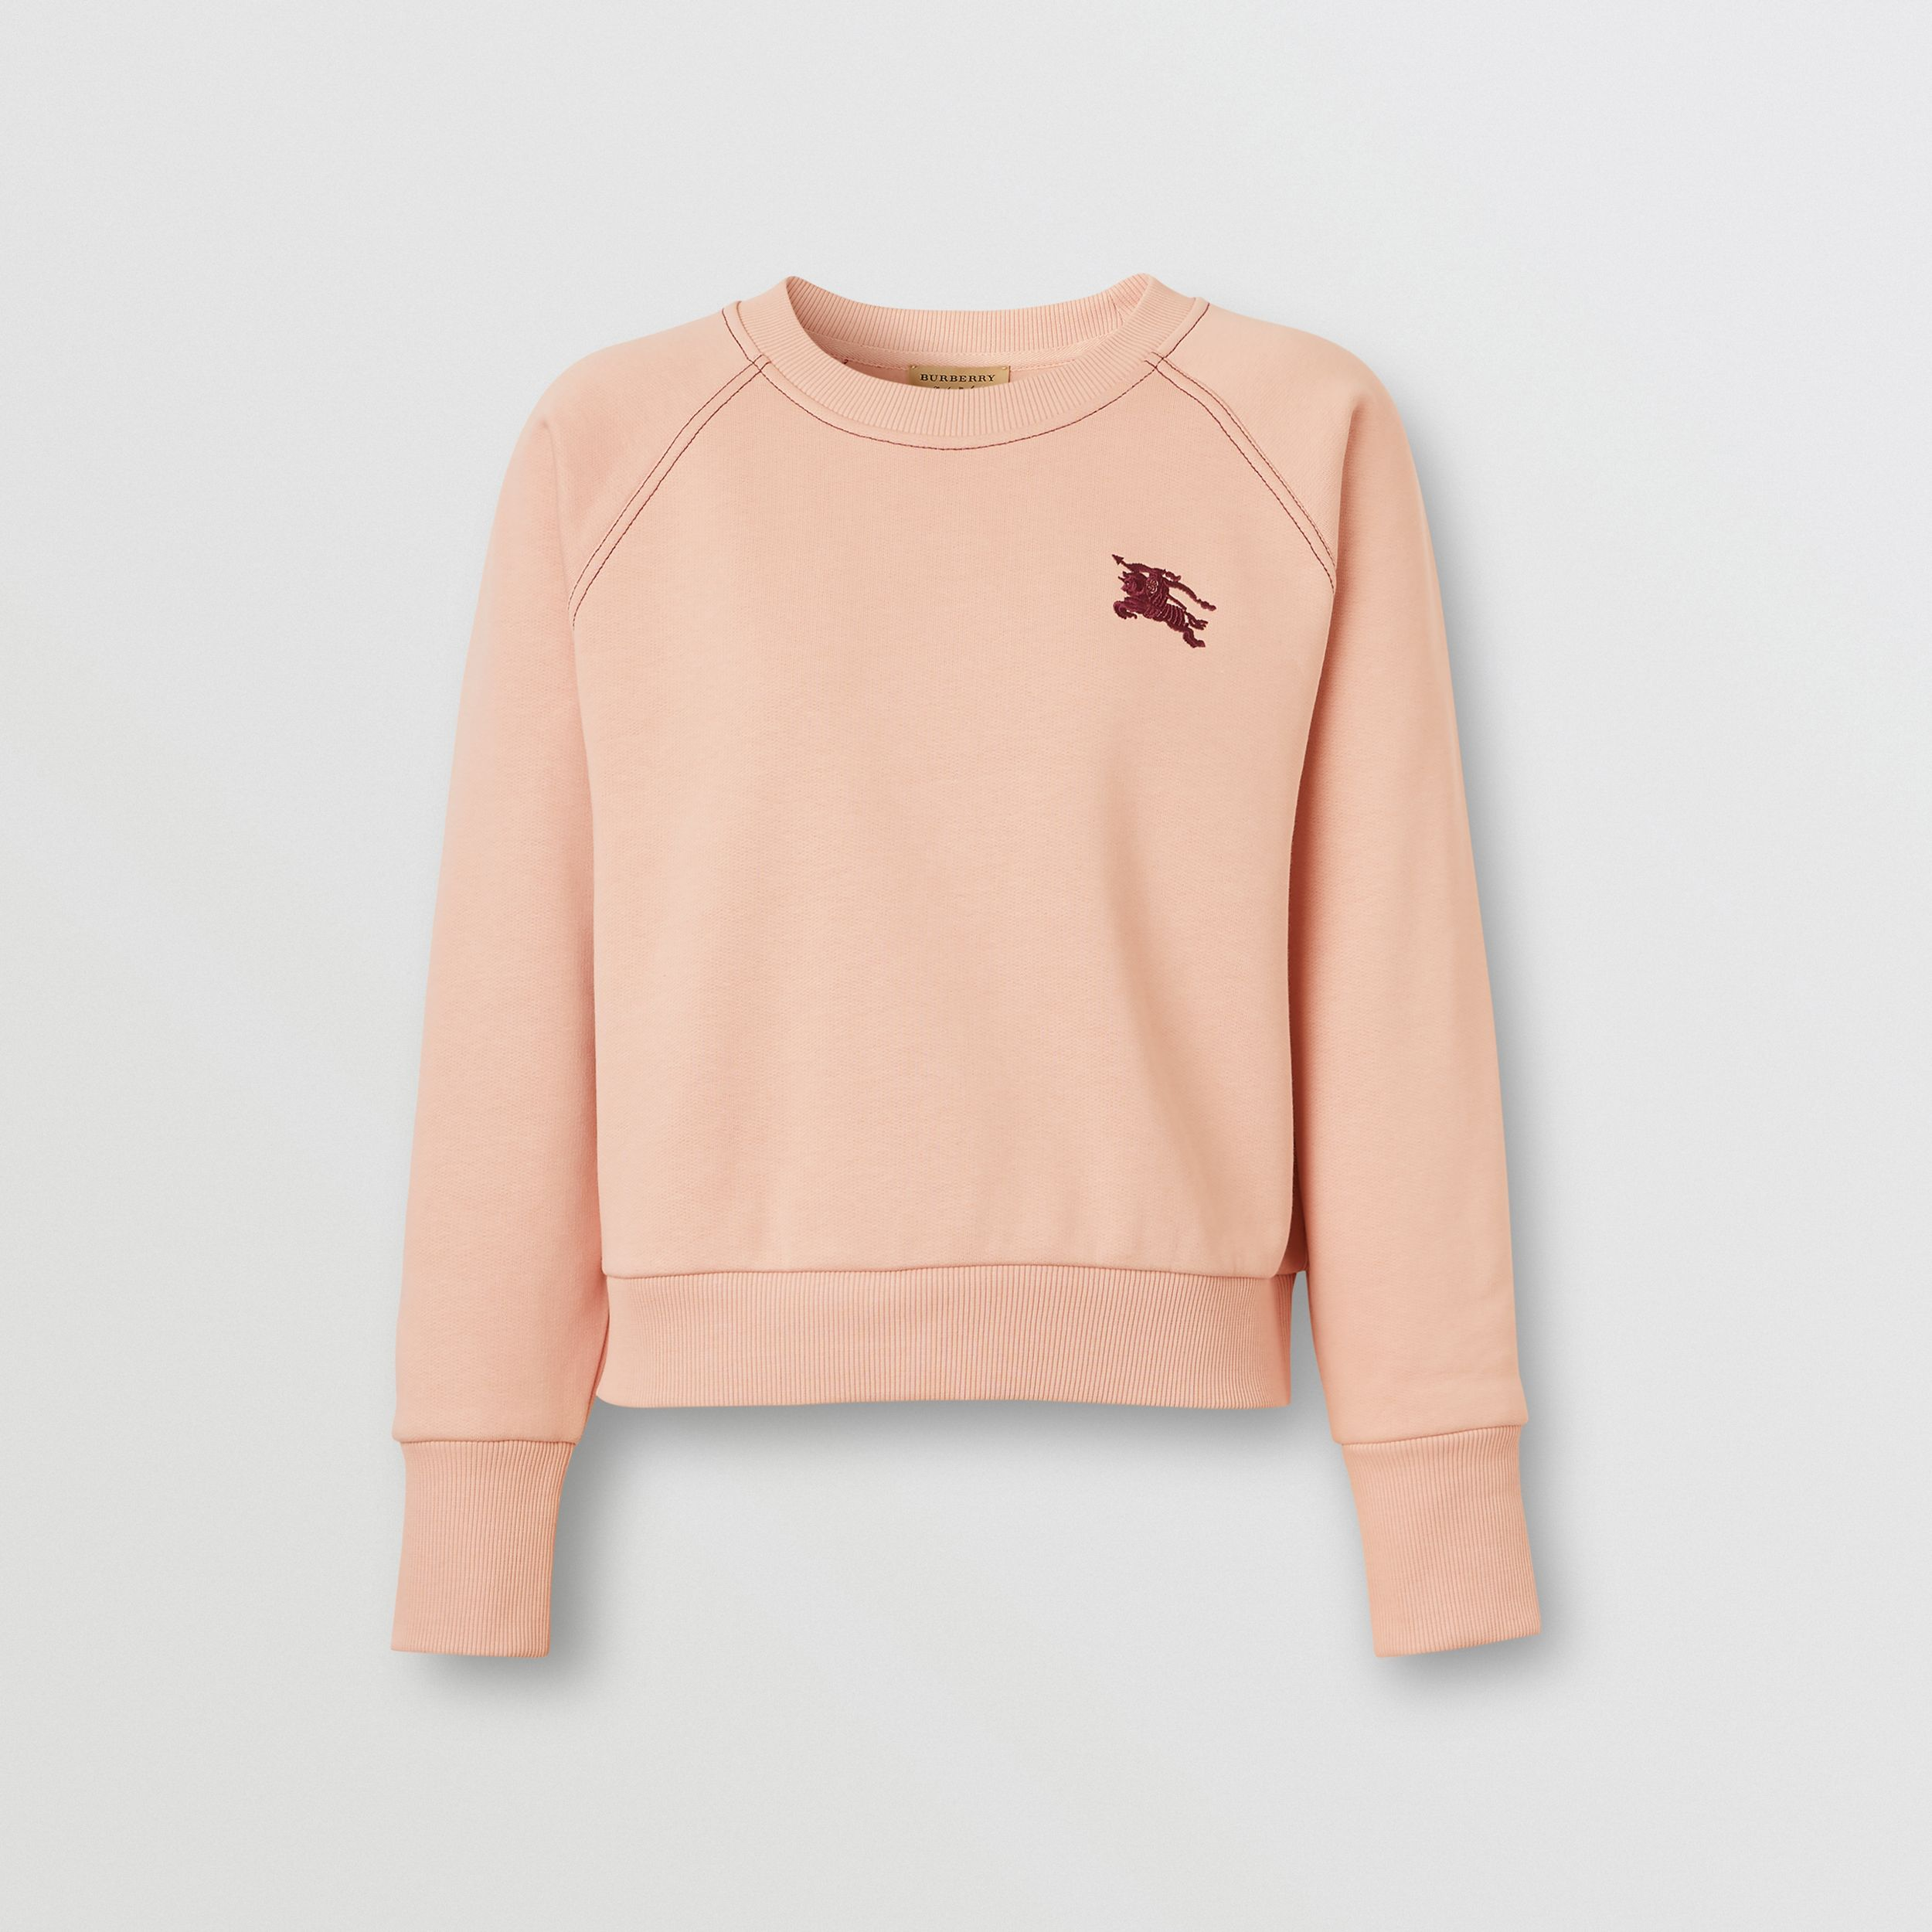 Embroidered EKD Jersey Sweatshirt in Ash Rose - Women | Burberry - 1